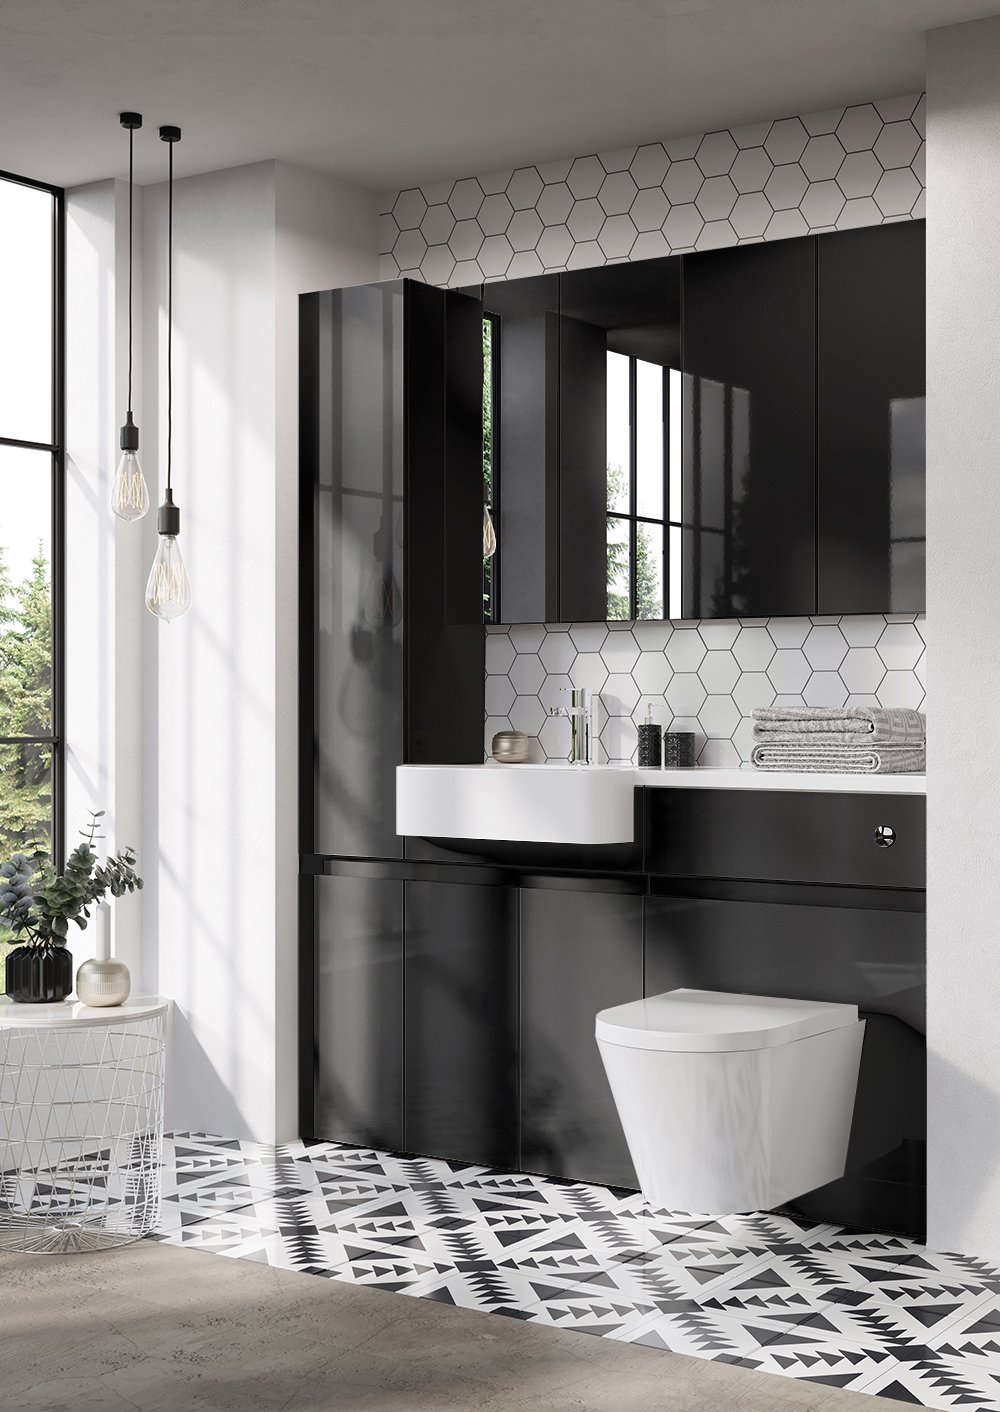 Combine black bathroom cabinets with geometry